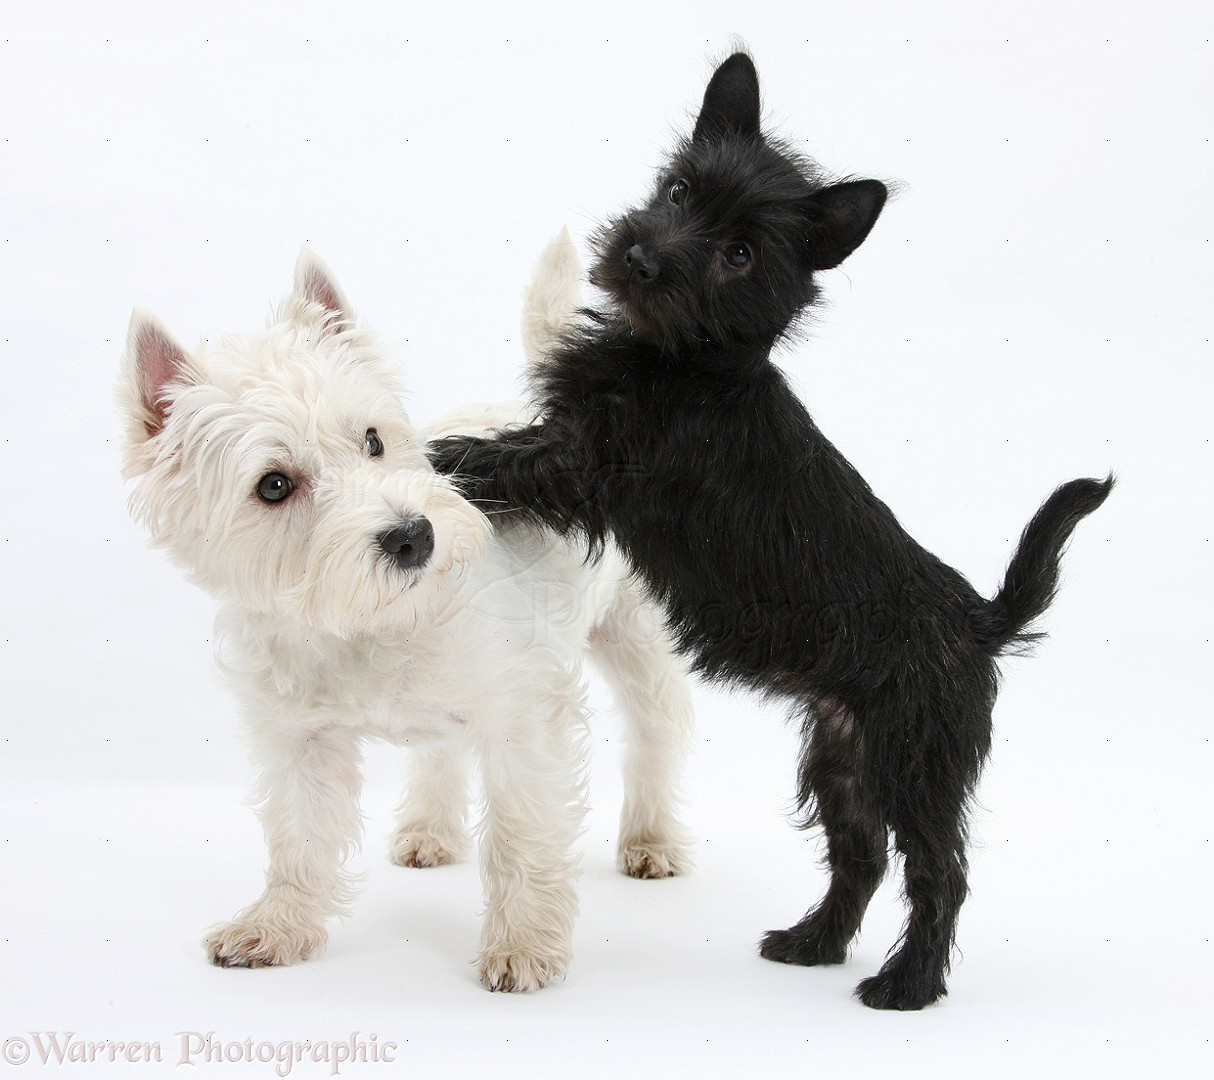 Dogs: Westie and playful black Terrier-cross puppy photo ...